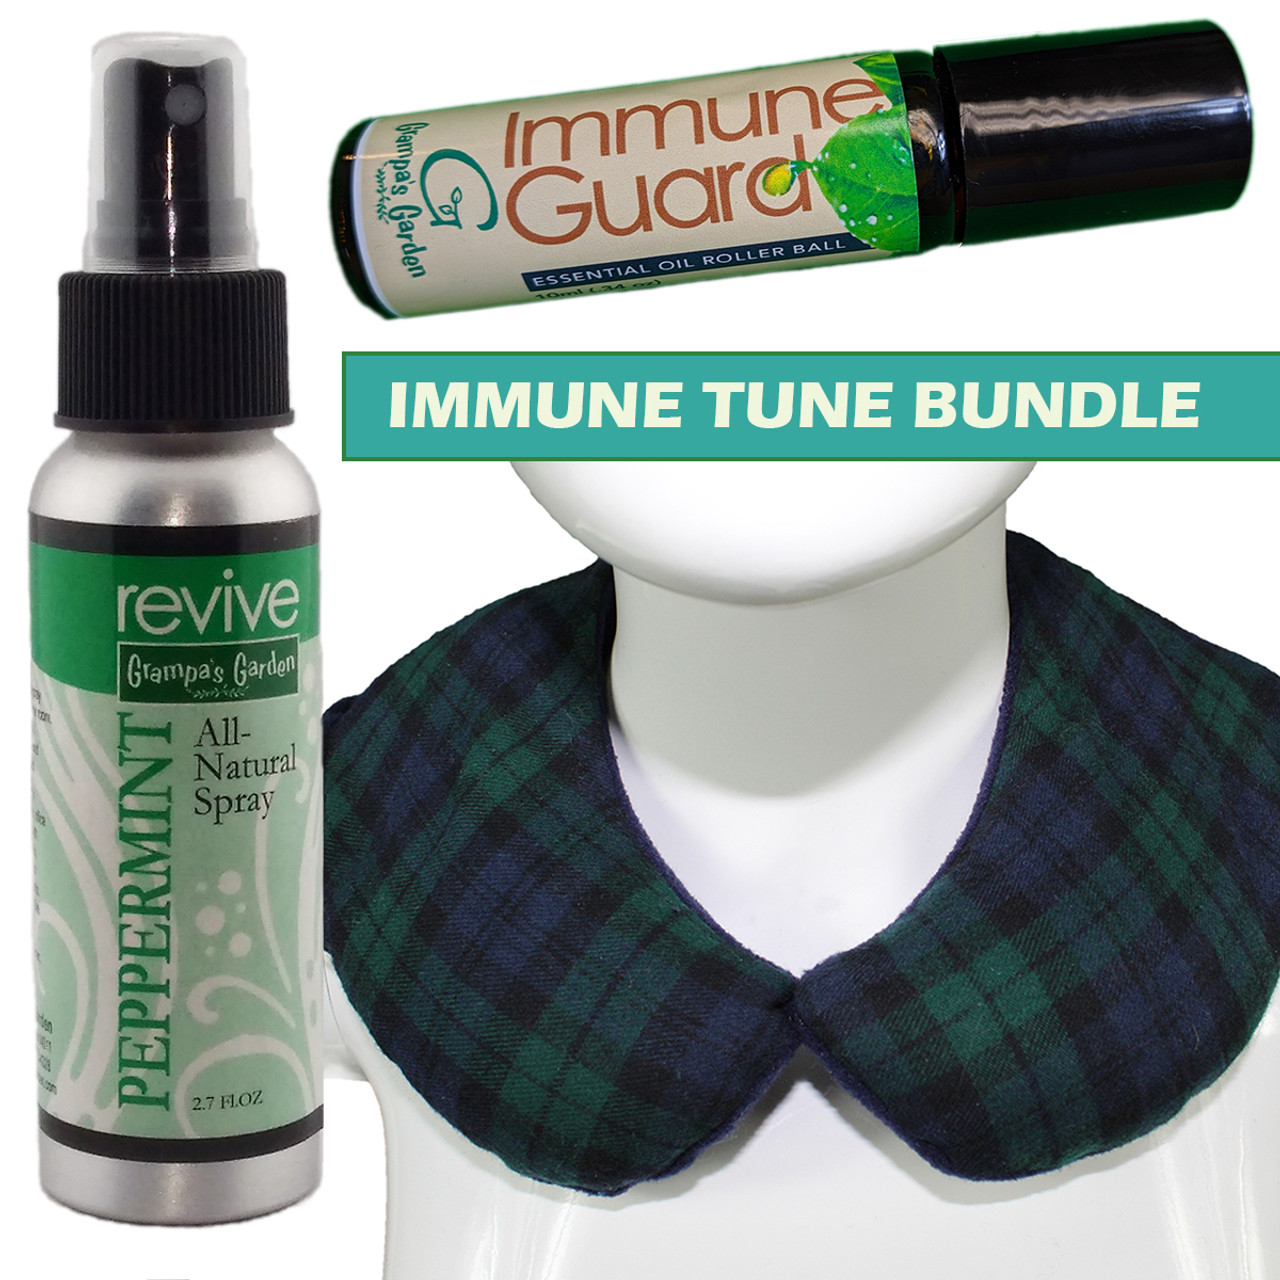 Immune Tune Bundle - Immune Roll-On Essential Oil Blend, Thera Pac (Black Watch or Galaxy), Peppermint Room Spray